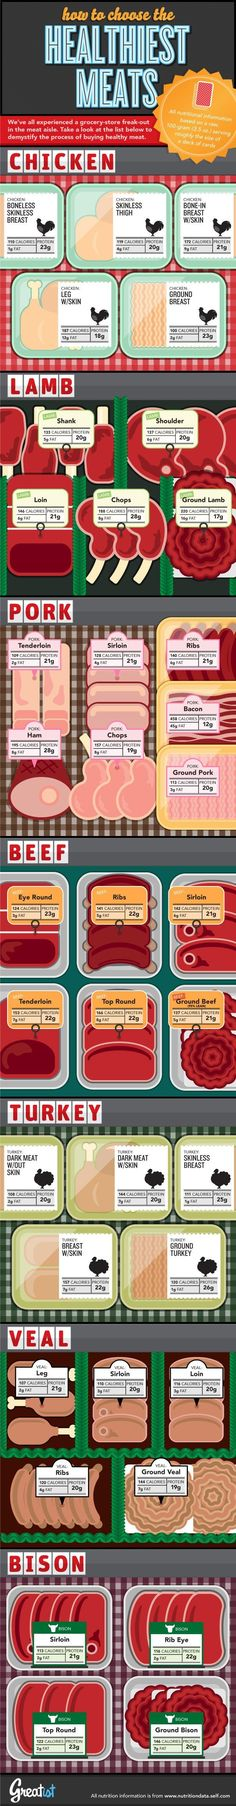 How to Choose the Healthiest Meats. AWESOME quick cheat sheet w basic info by meat type/cut (includes cal / fat / protein)